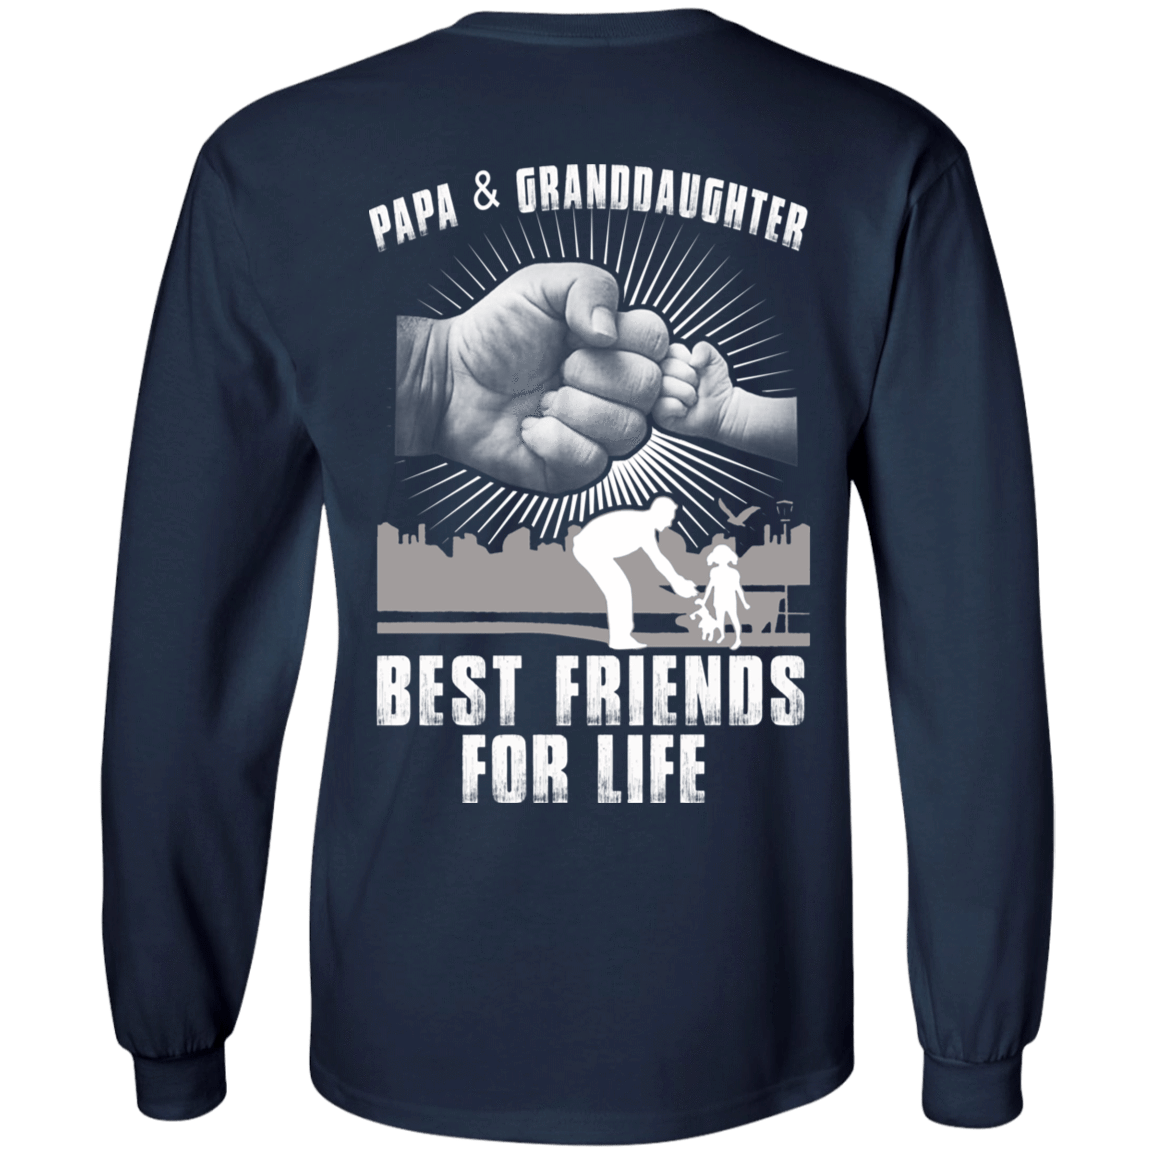 Papa And Granddaughter Best Friends For Life 30-184-71996237-331 - Tee Ript